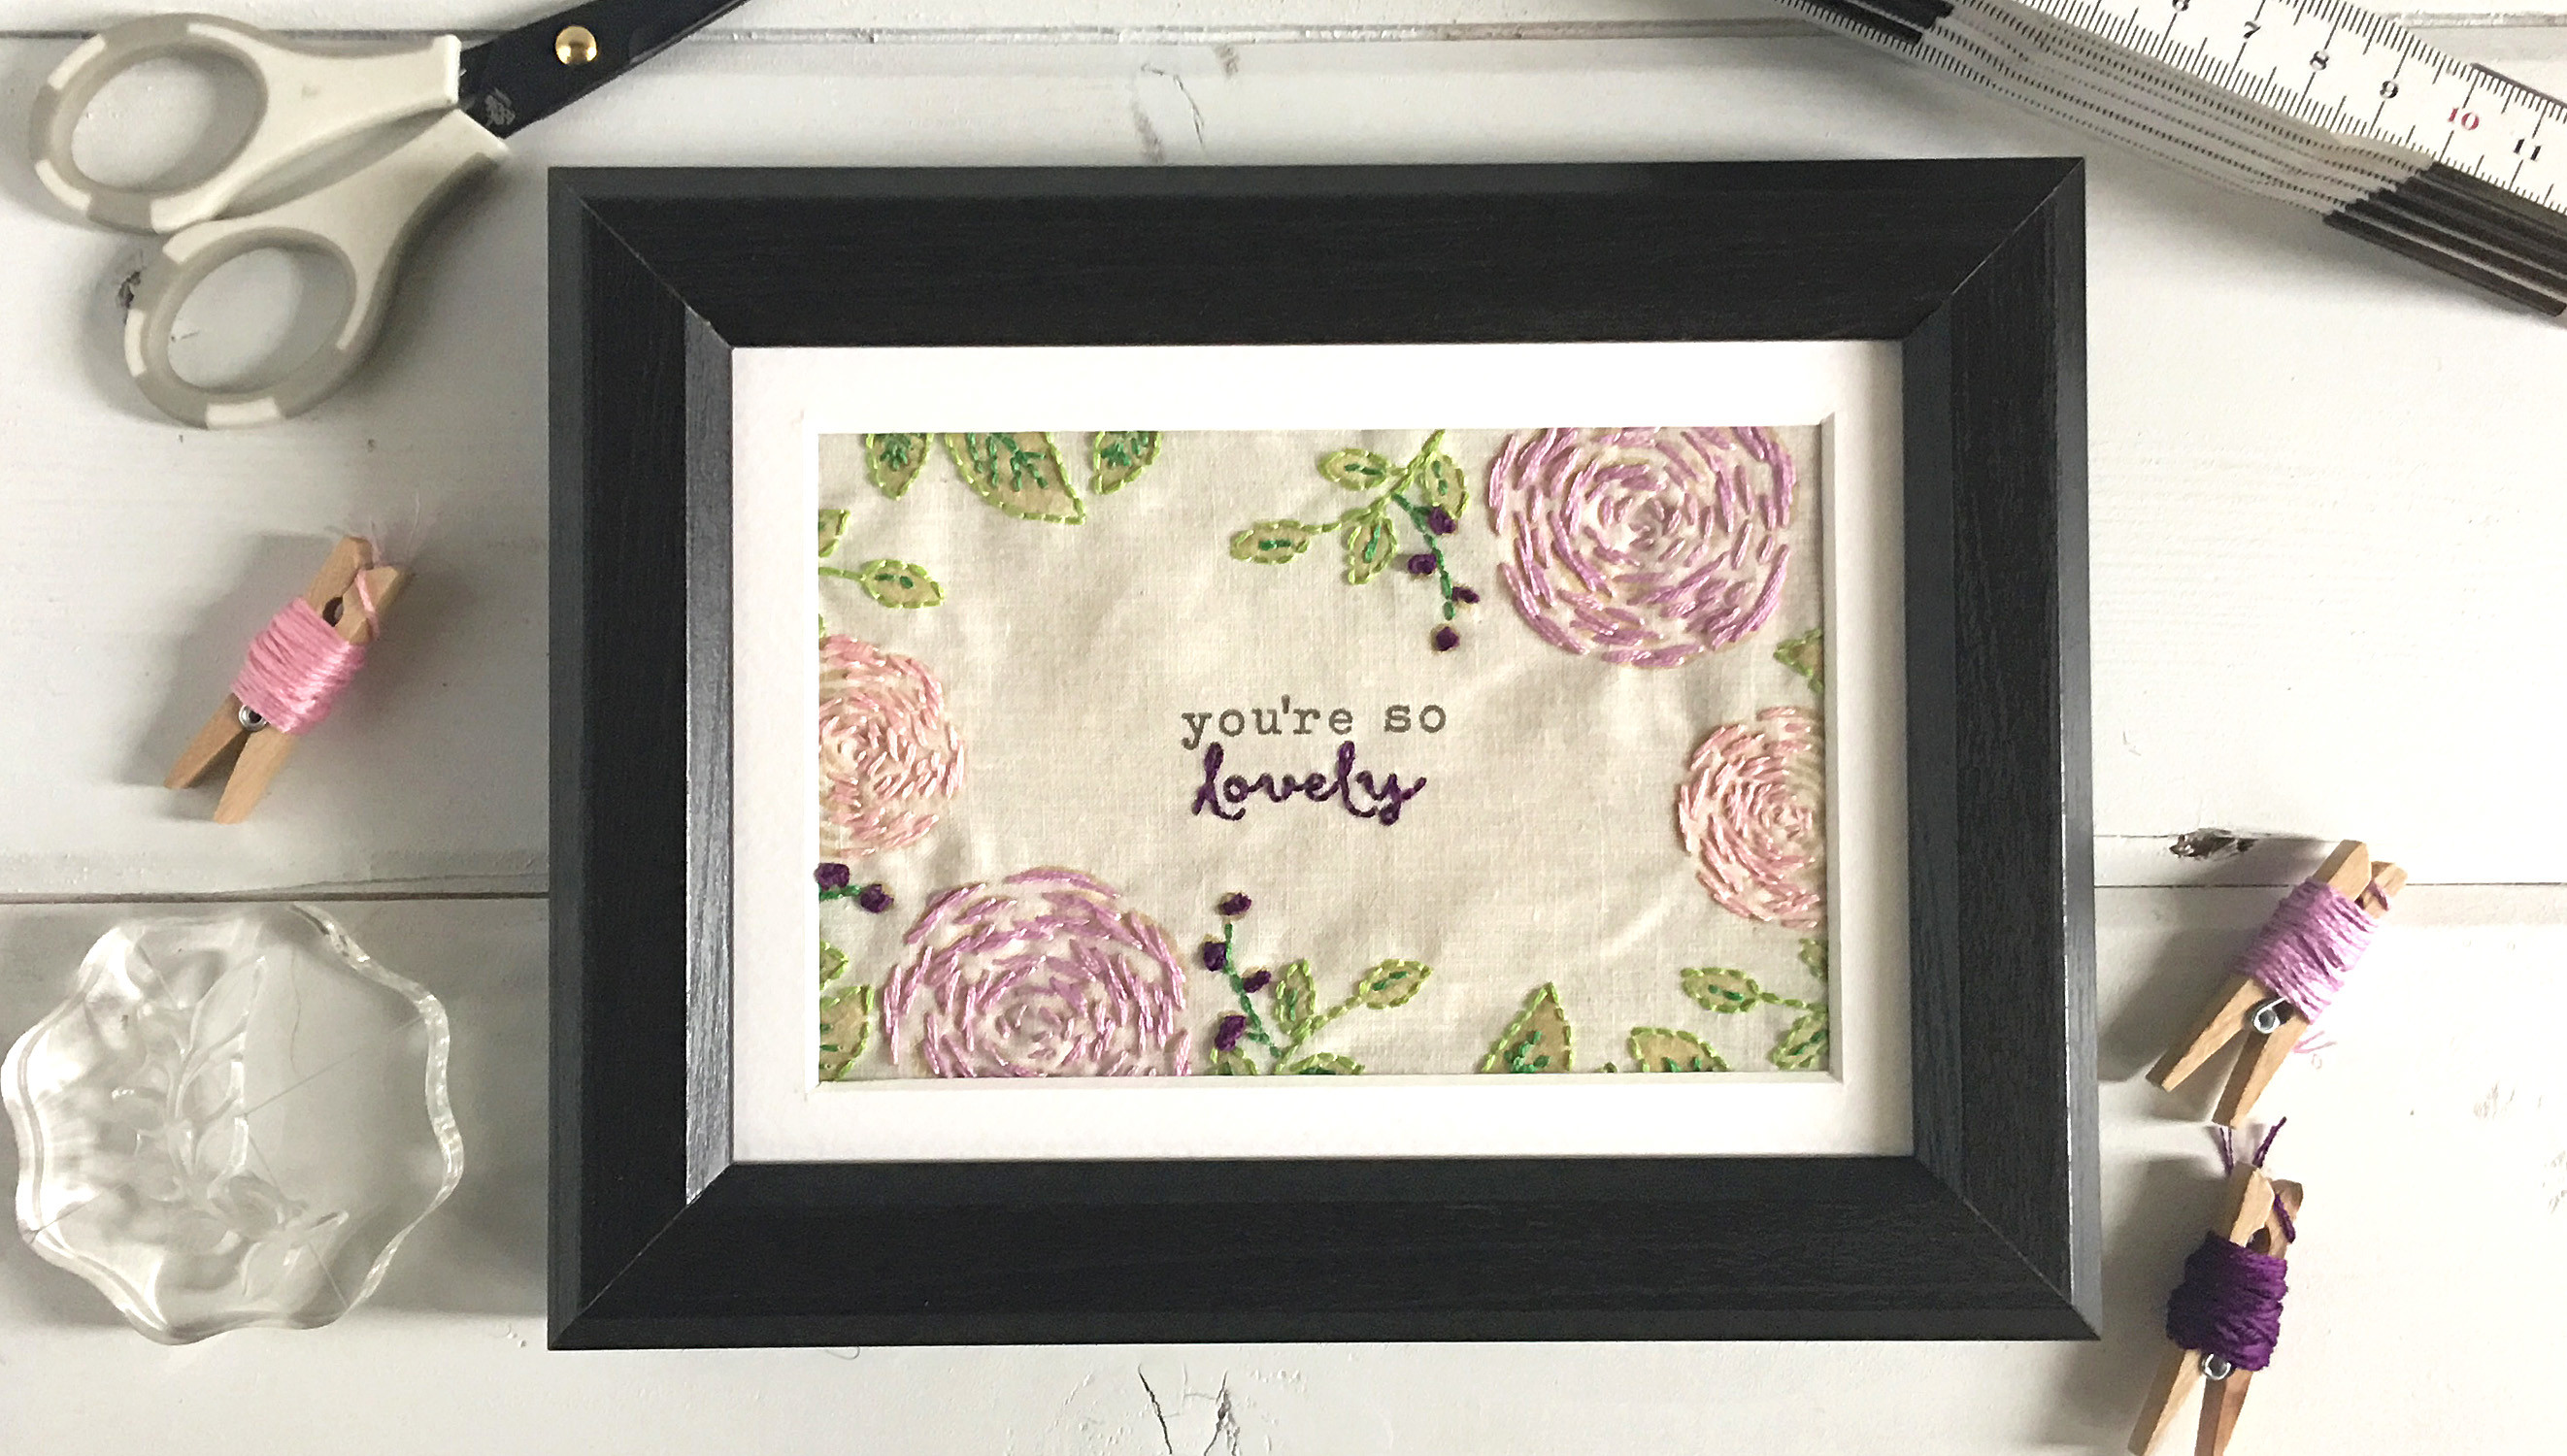 Picture 5 of Stamping on Unique Surfaces at Big Picture Classes